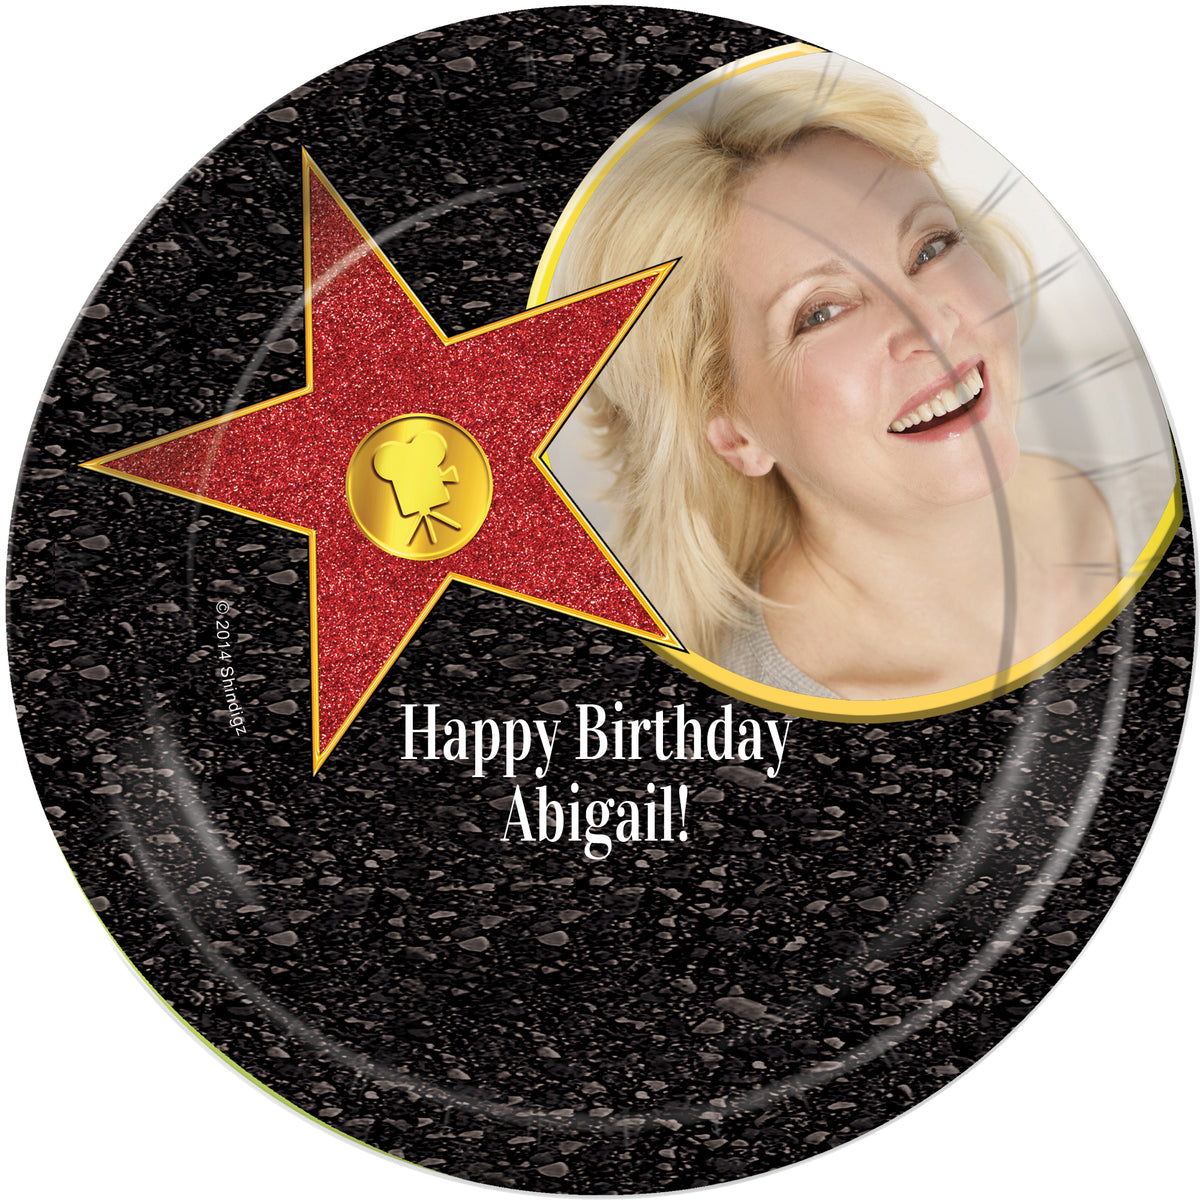 Hollywood Walk of Fame Personalized Dinner Plates